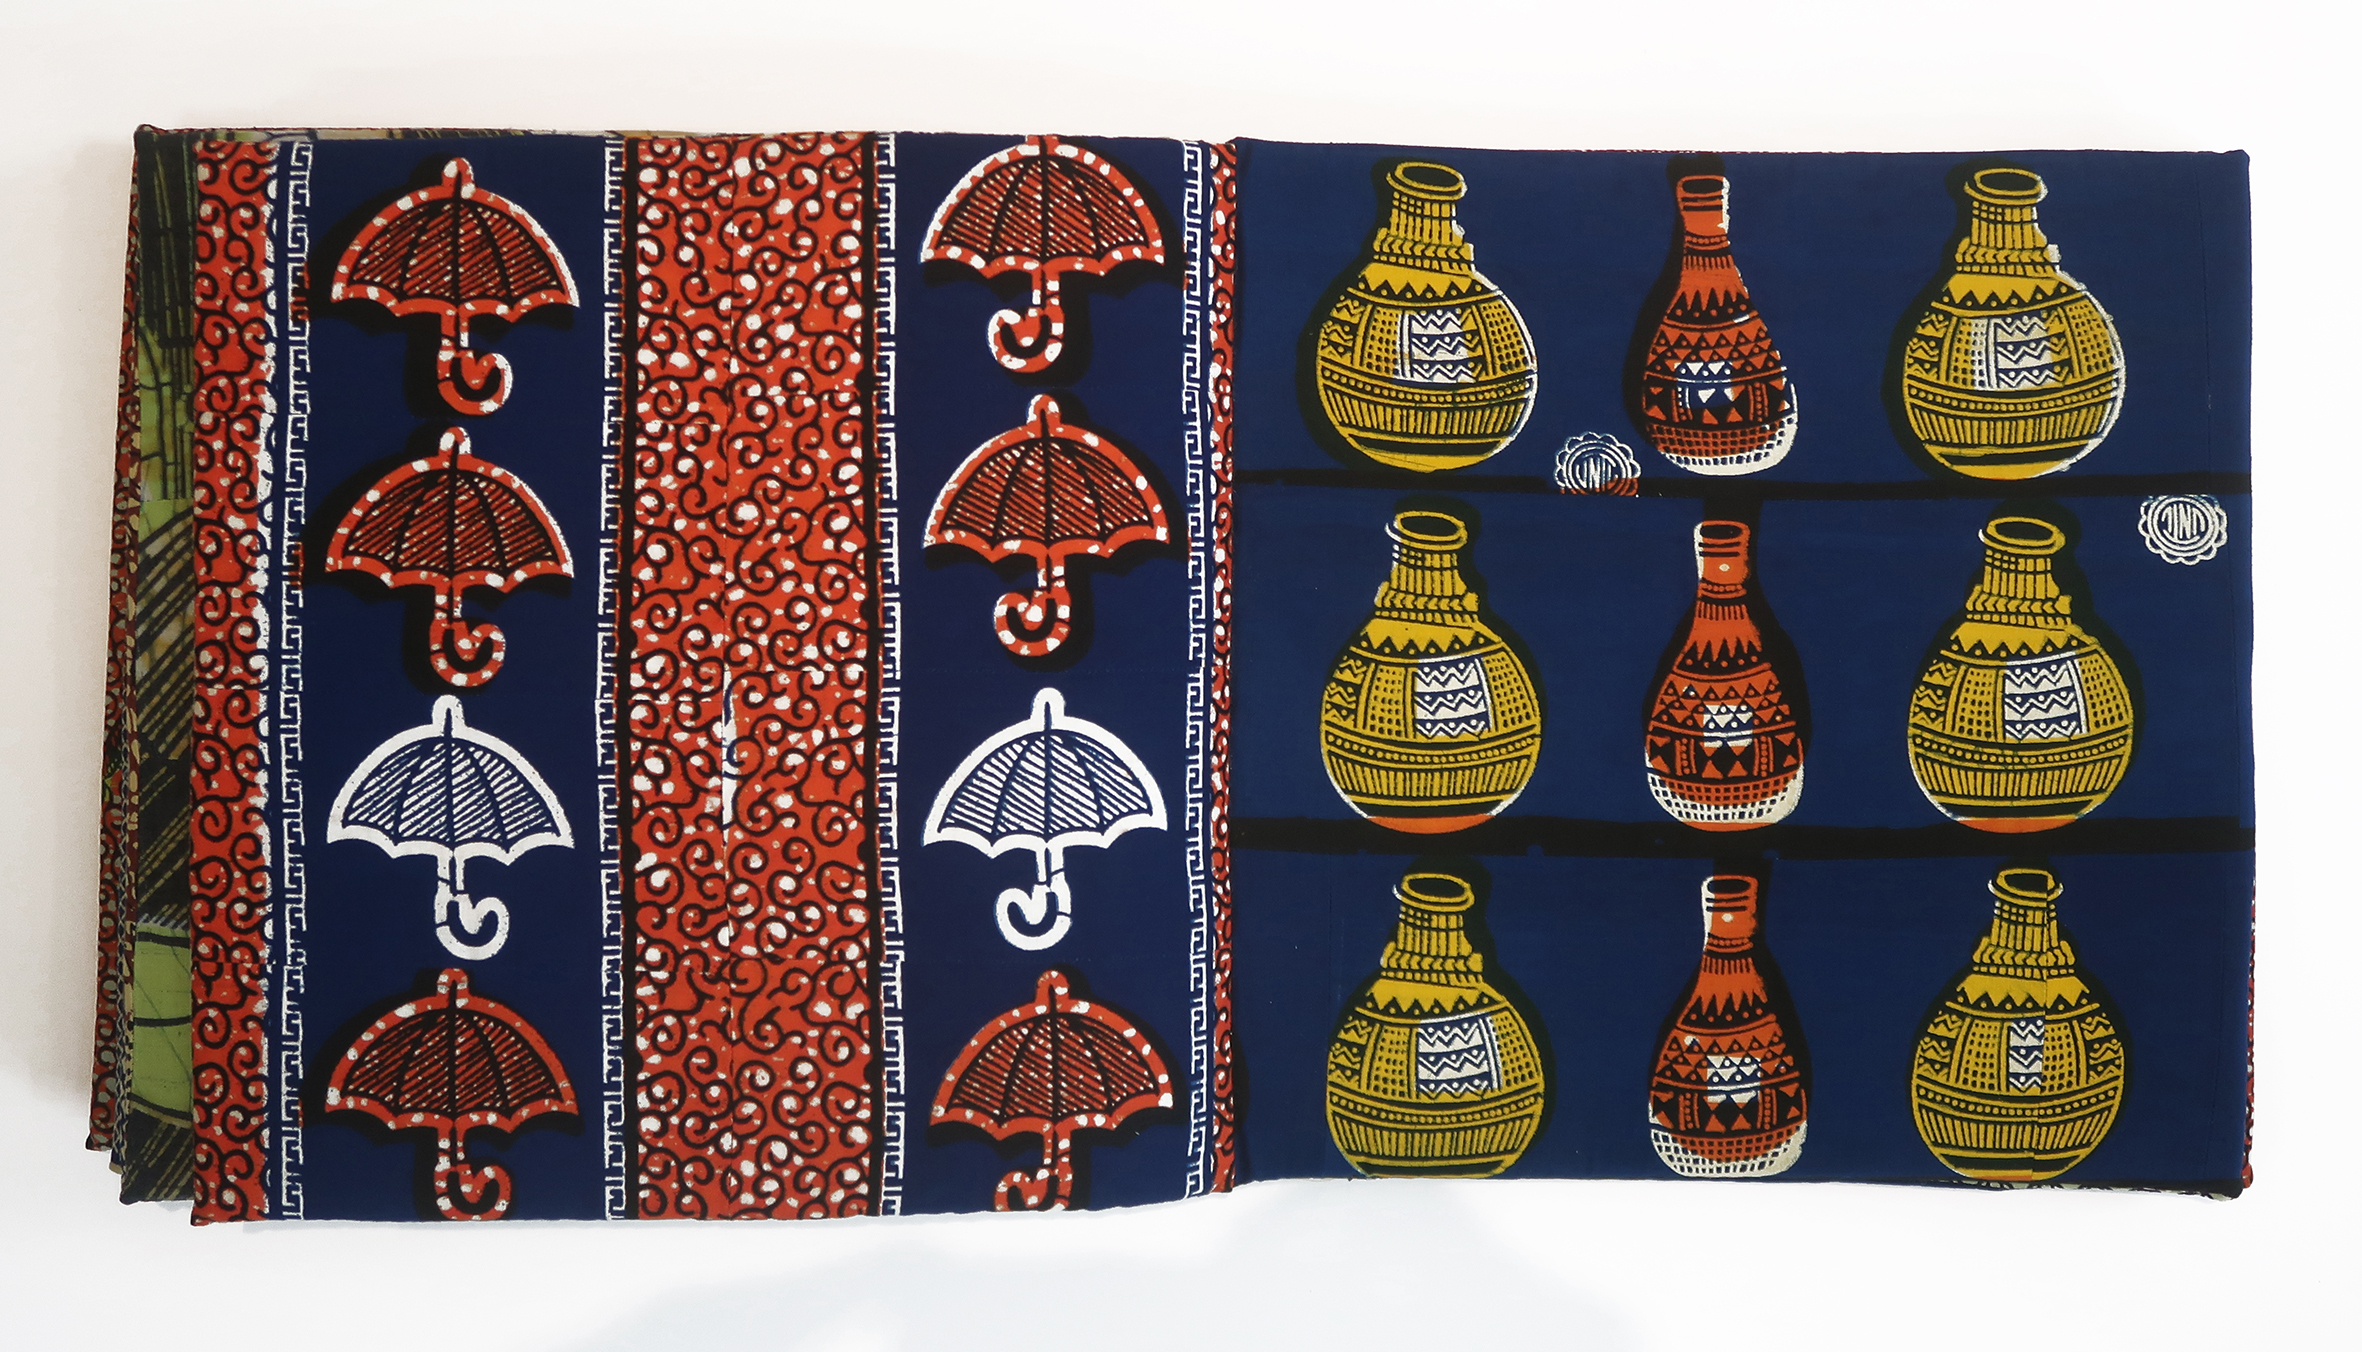 open fabric book with pattern of umbrellas and pots